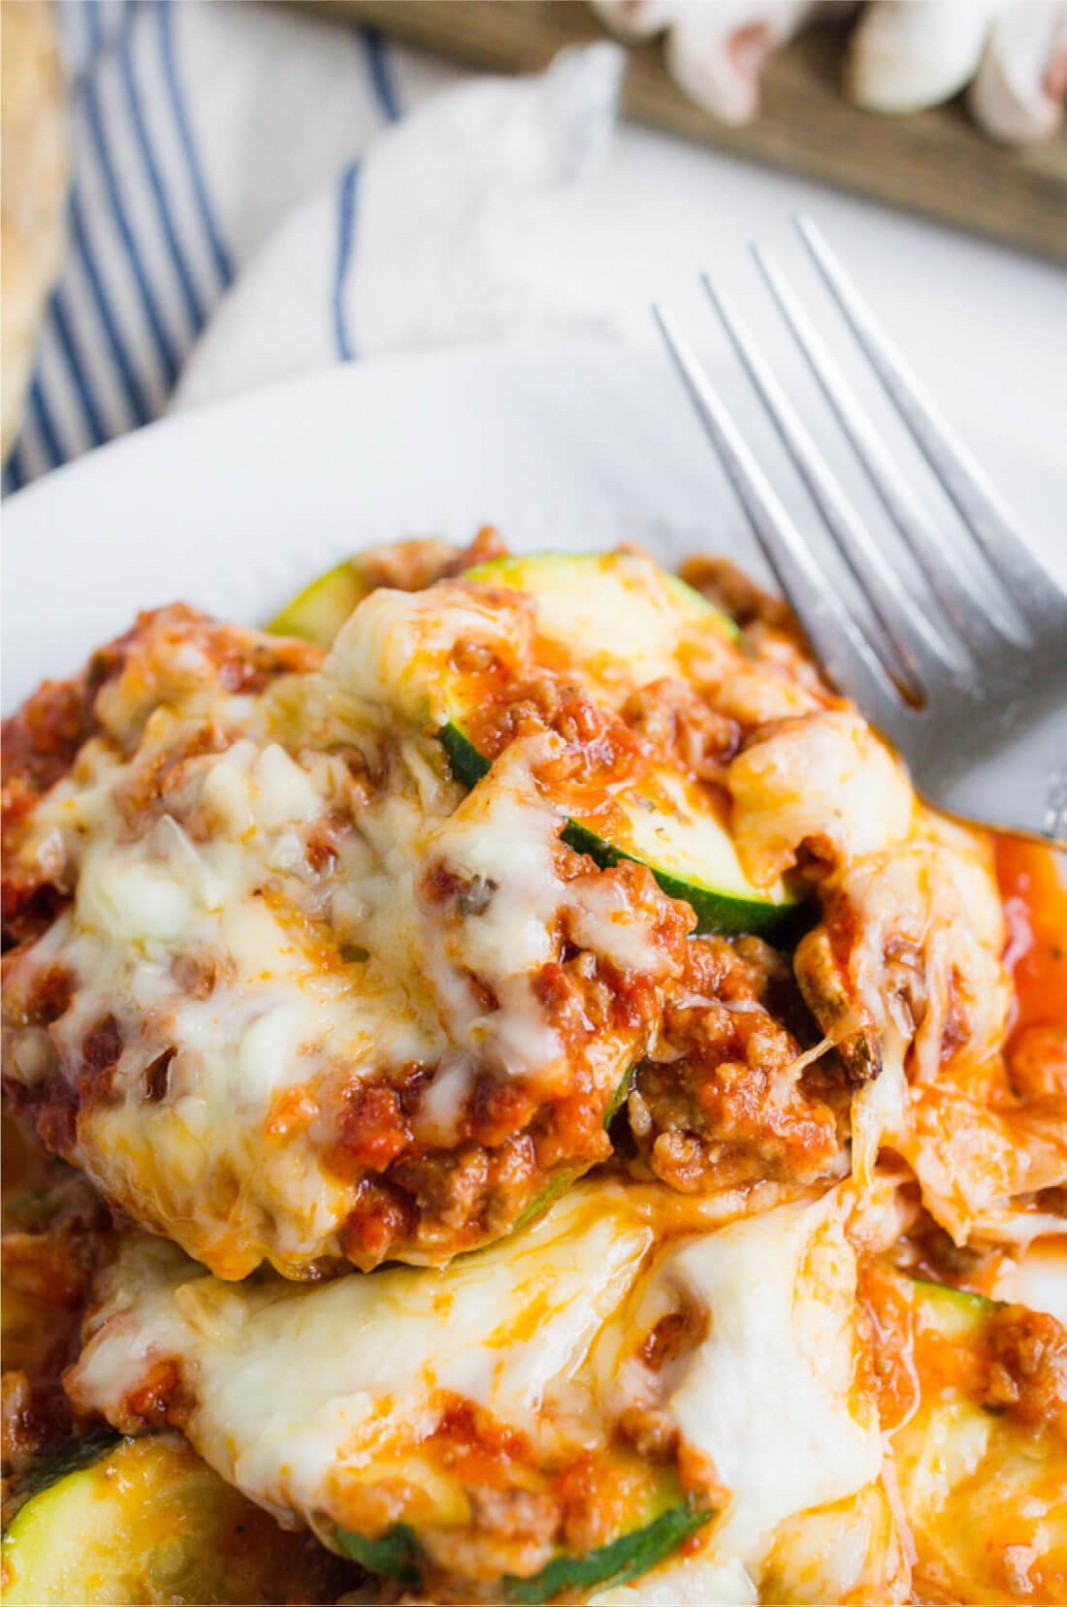 Healthy Zucchini Lasagna Recipe - good food recipes for dinner